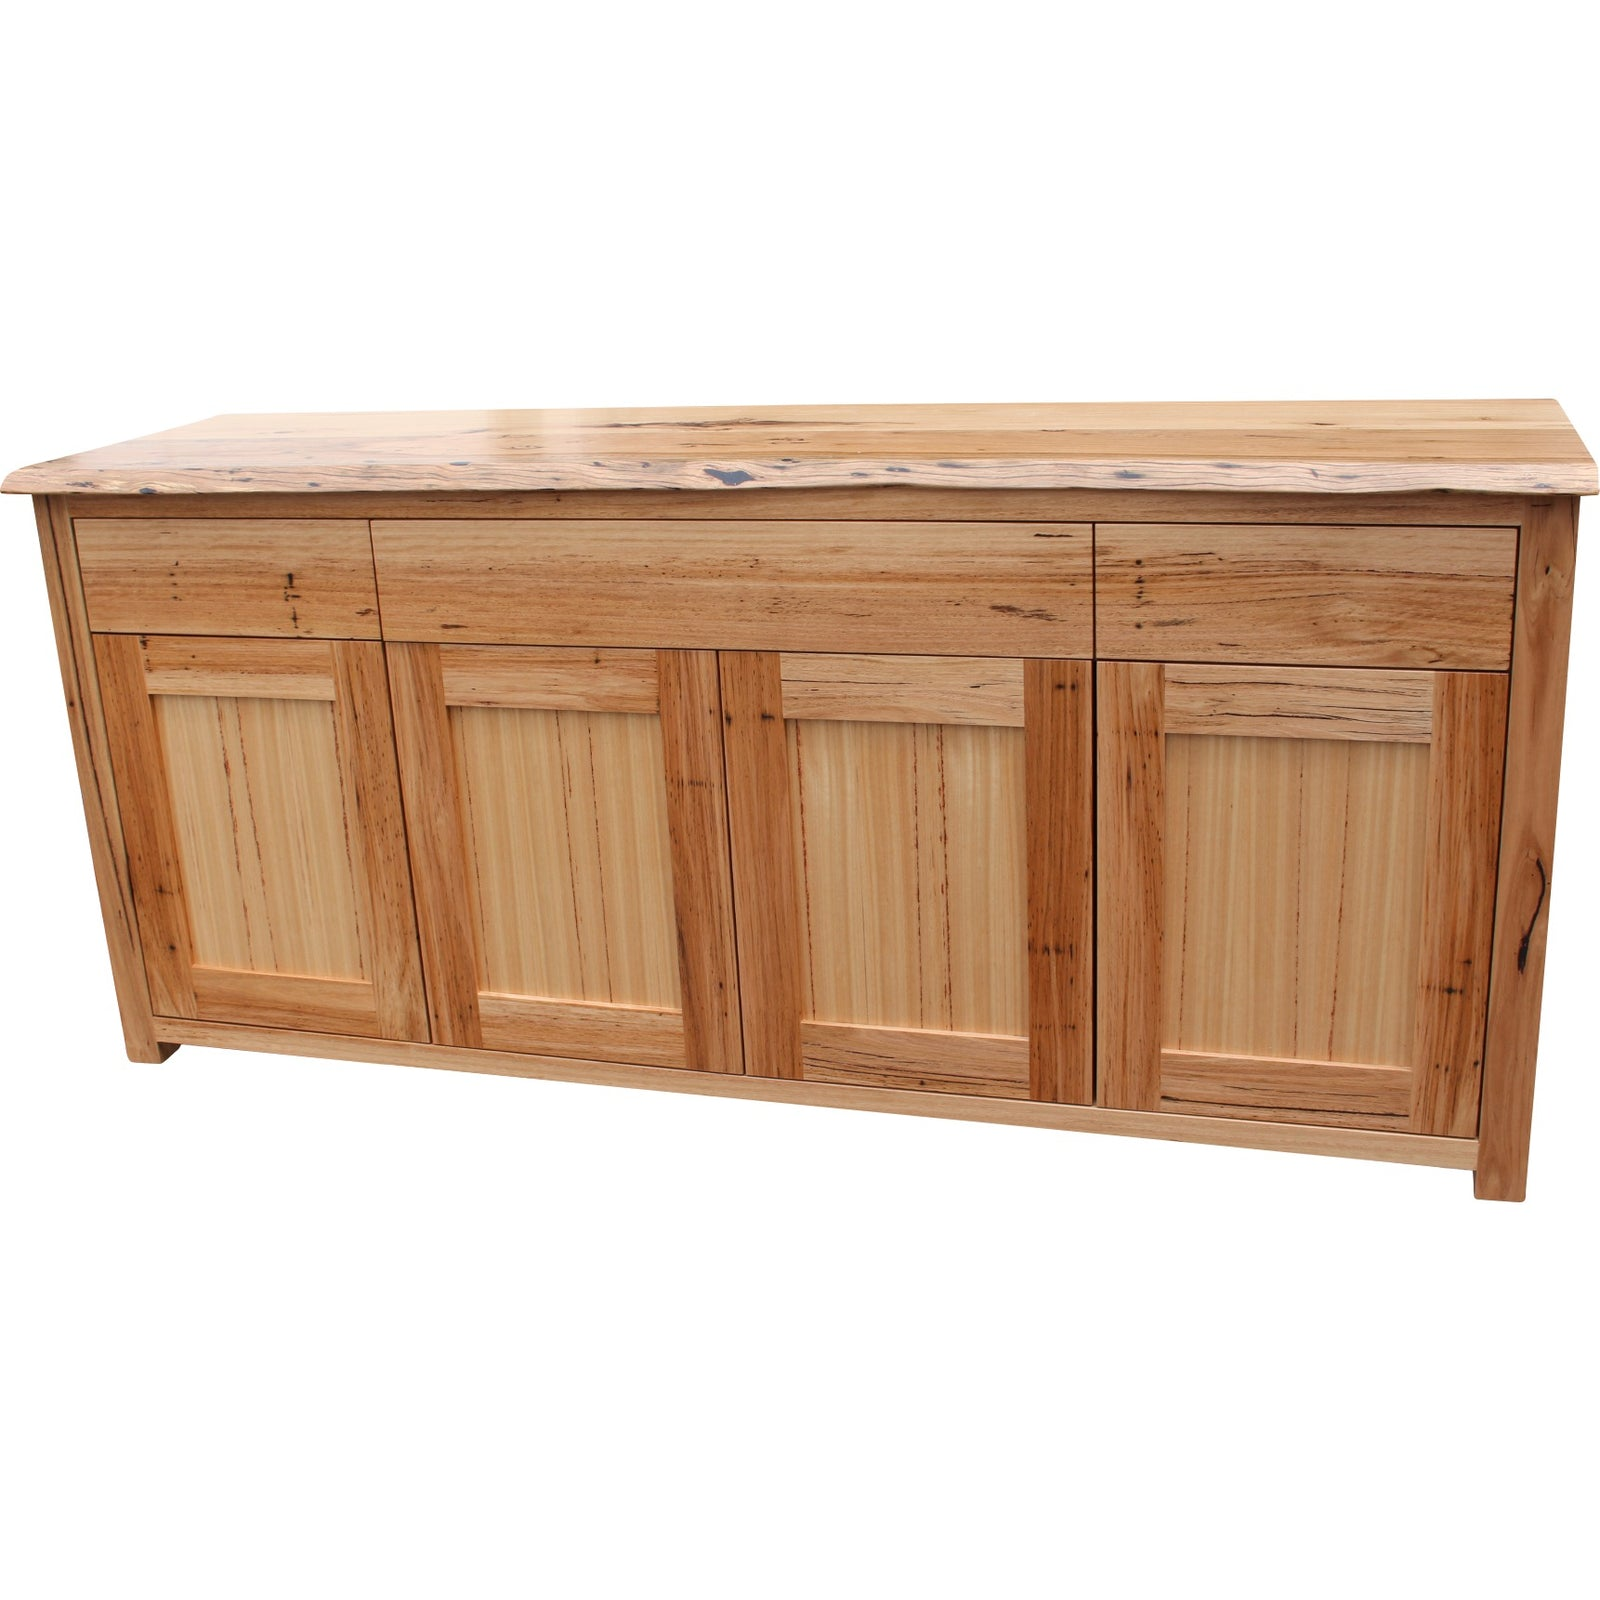 Carlton style buffet 4 door 3 drawer / different door style-buffet-Wildwood Designs Furniture